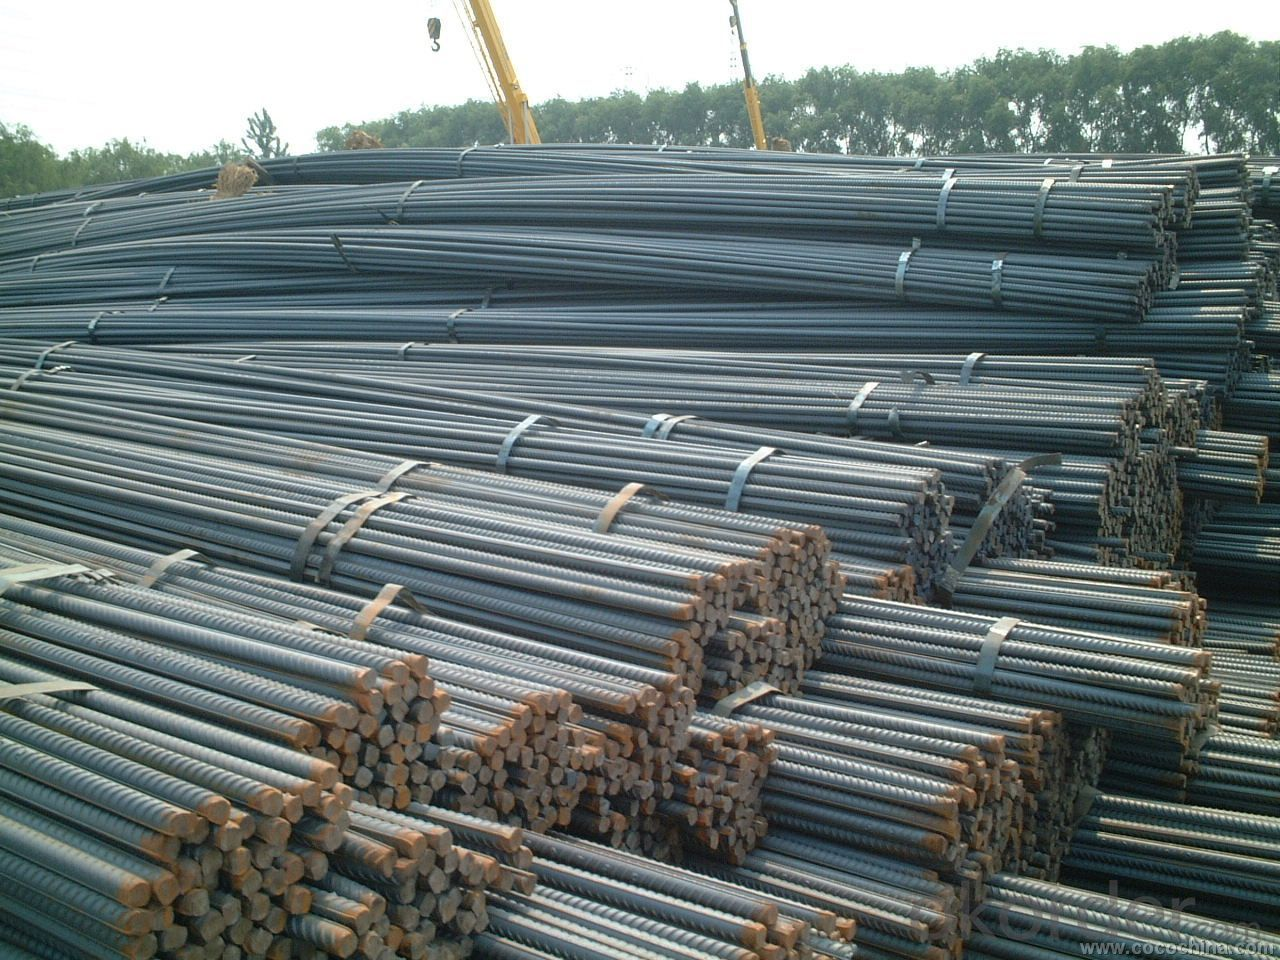 Steels Manufacture Building Material Construction Made in China China on Hot Sale